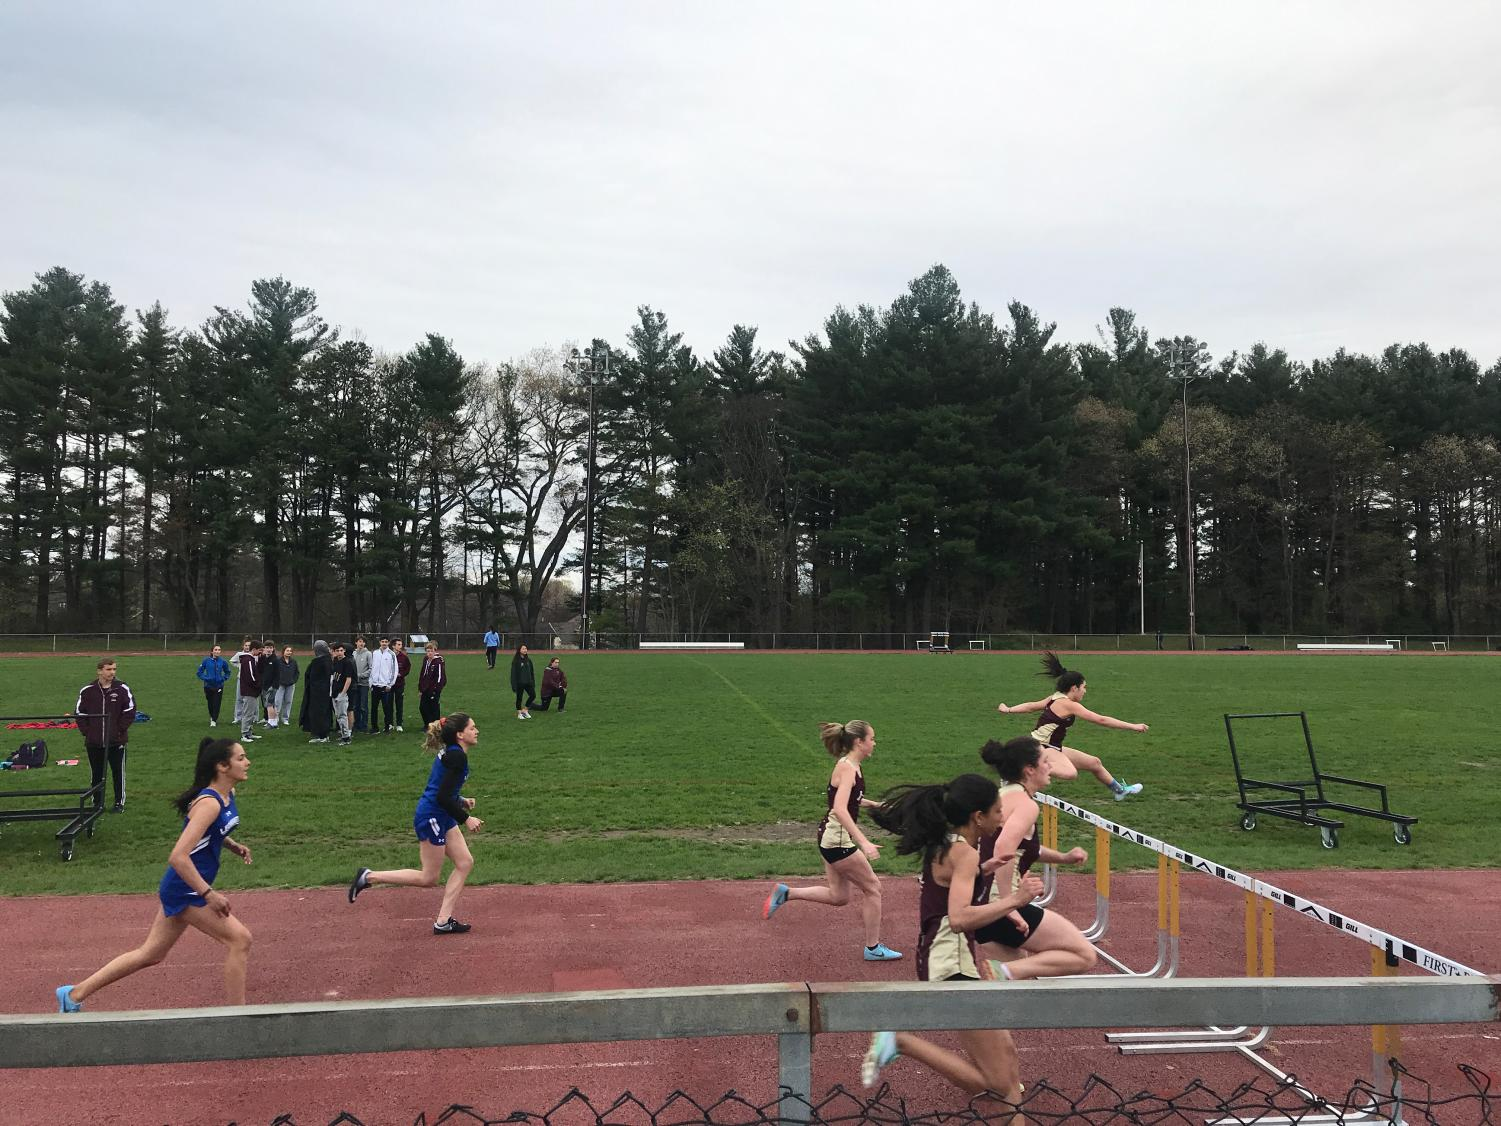 Algonquin athletes dominate Leominster in the 400M hurdle event, claiming all three top spots.